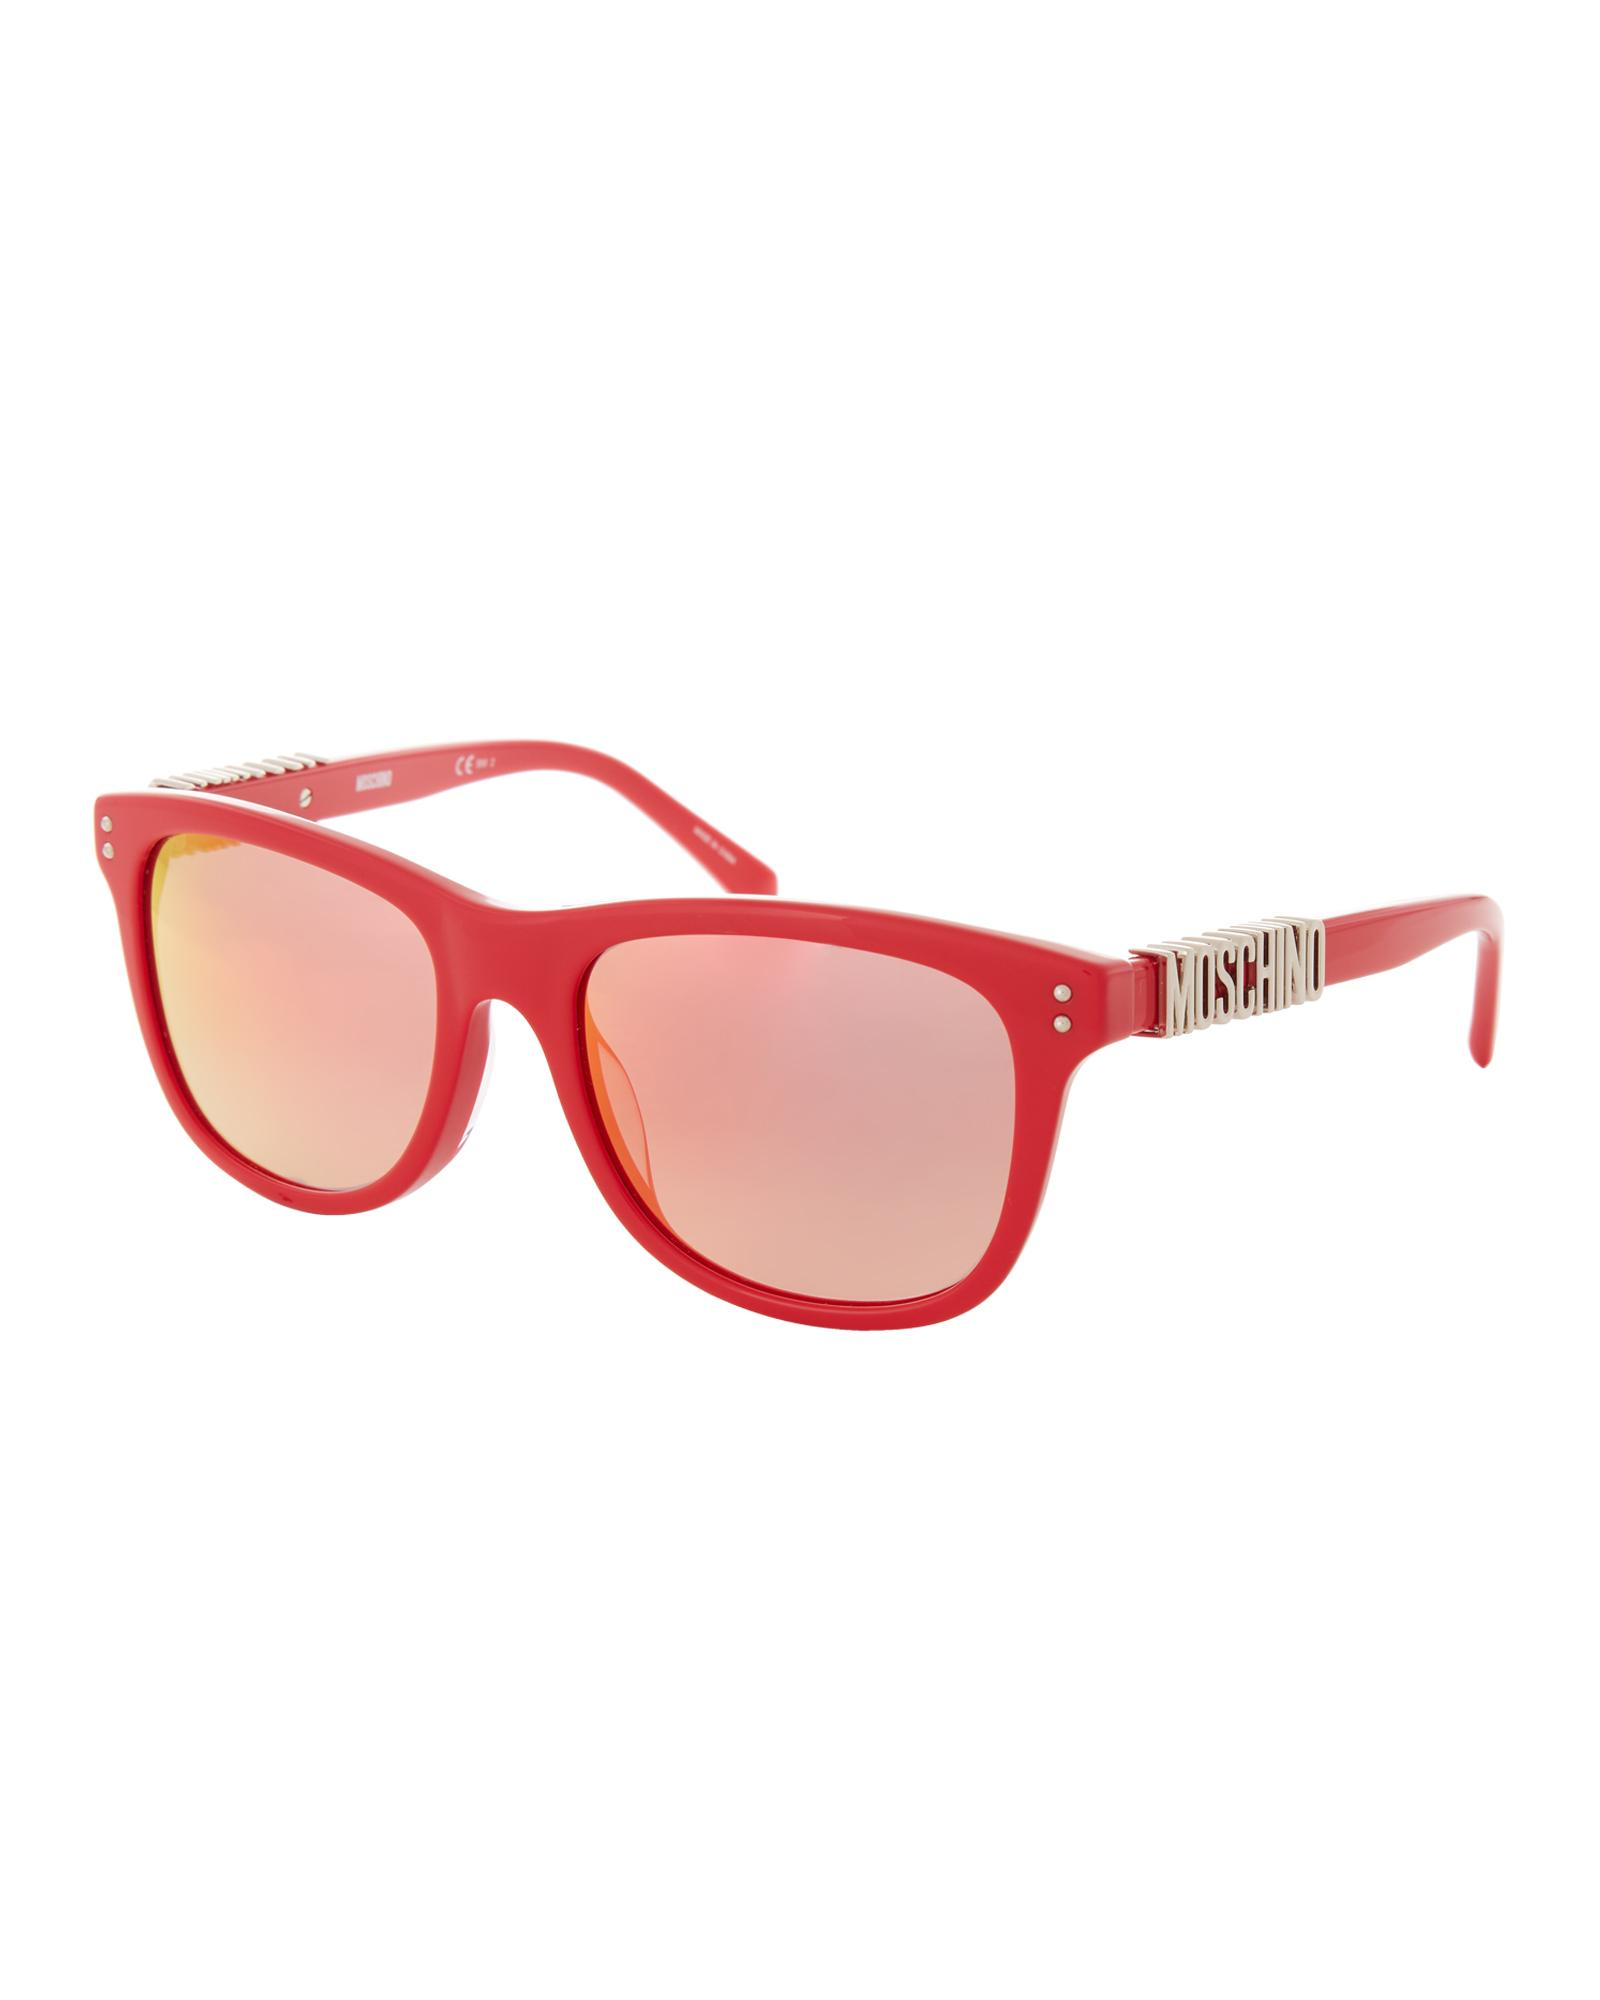 a3751b52f5 Lyst - Moschino Mos003 s Red Flash Logo Reflective Sunglasses in White